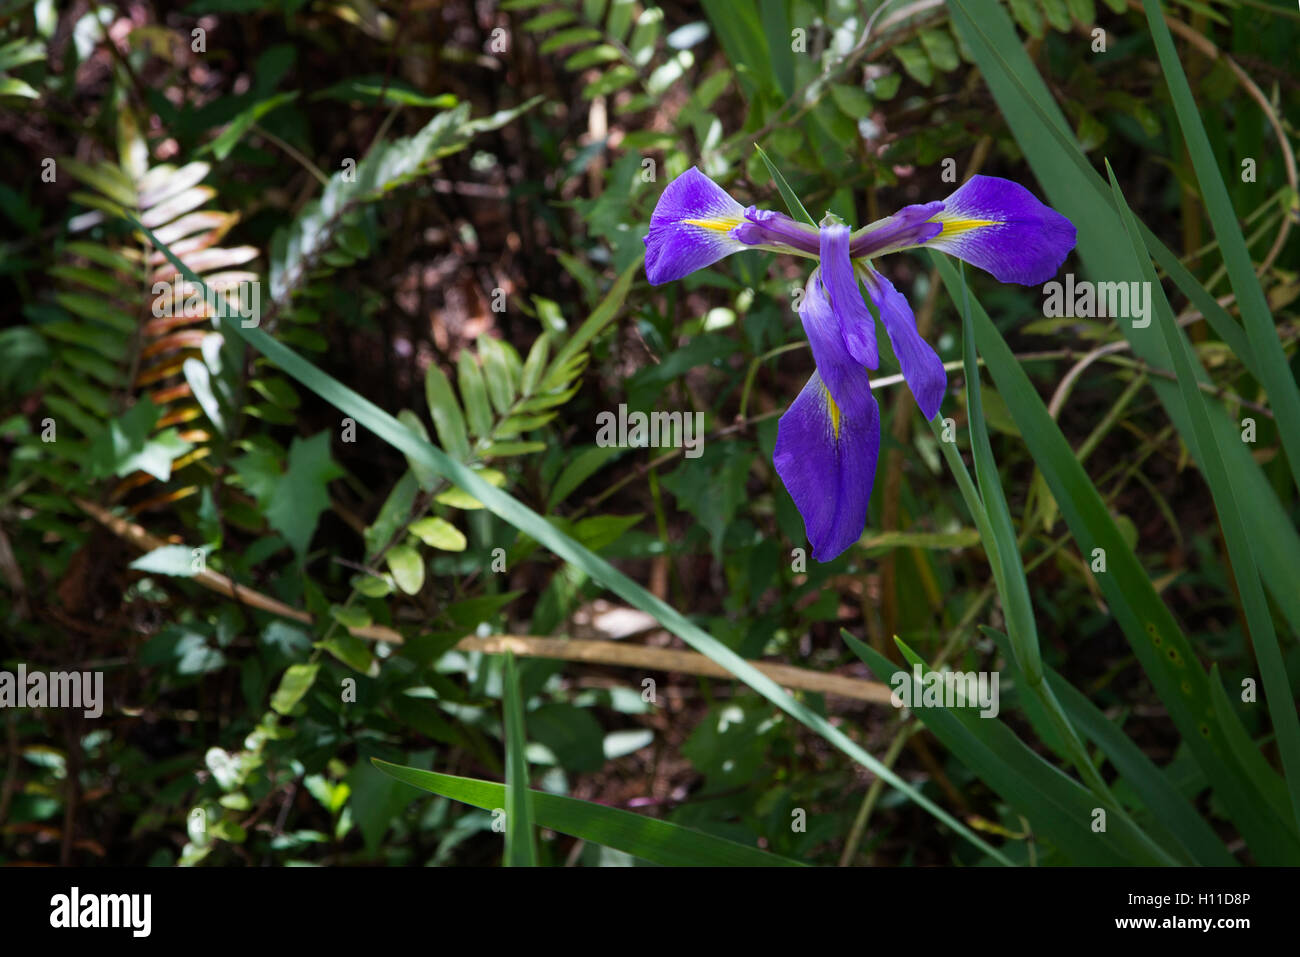 Wind and conditions on a sultry Florida day have draped the petals of this Blue Flag Iris into a lovely purple cross. - Stock Image